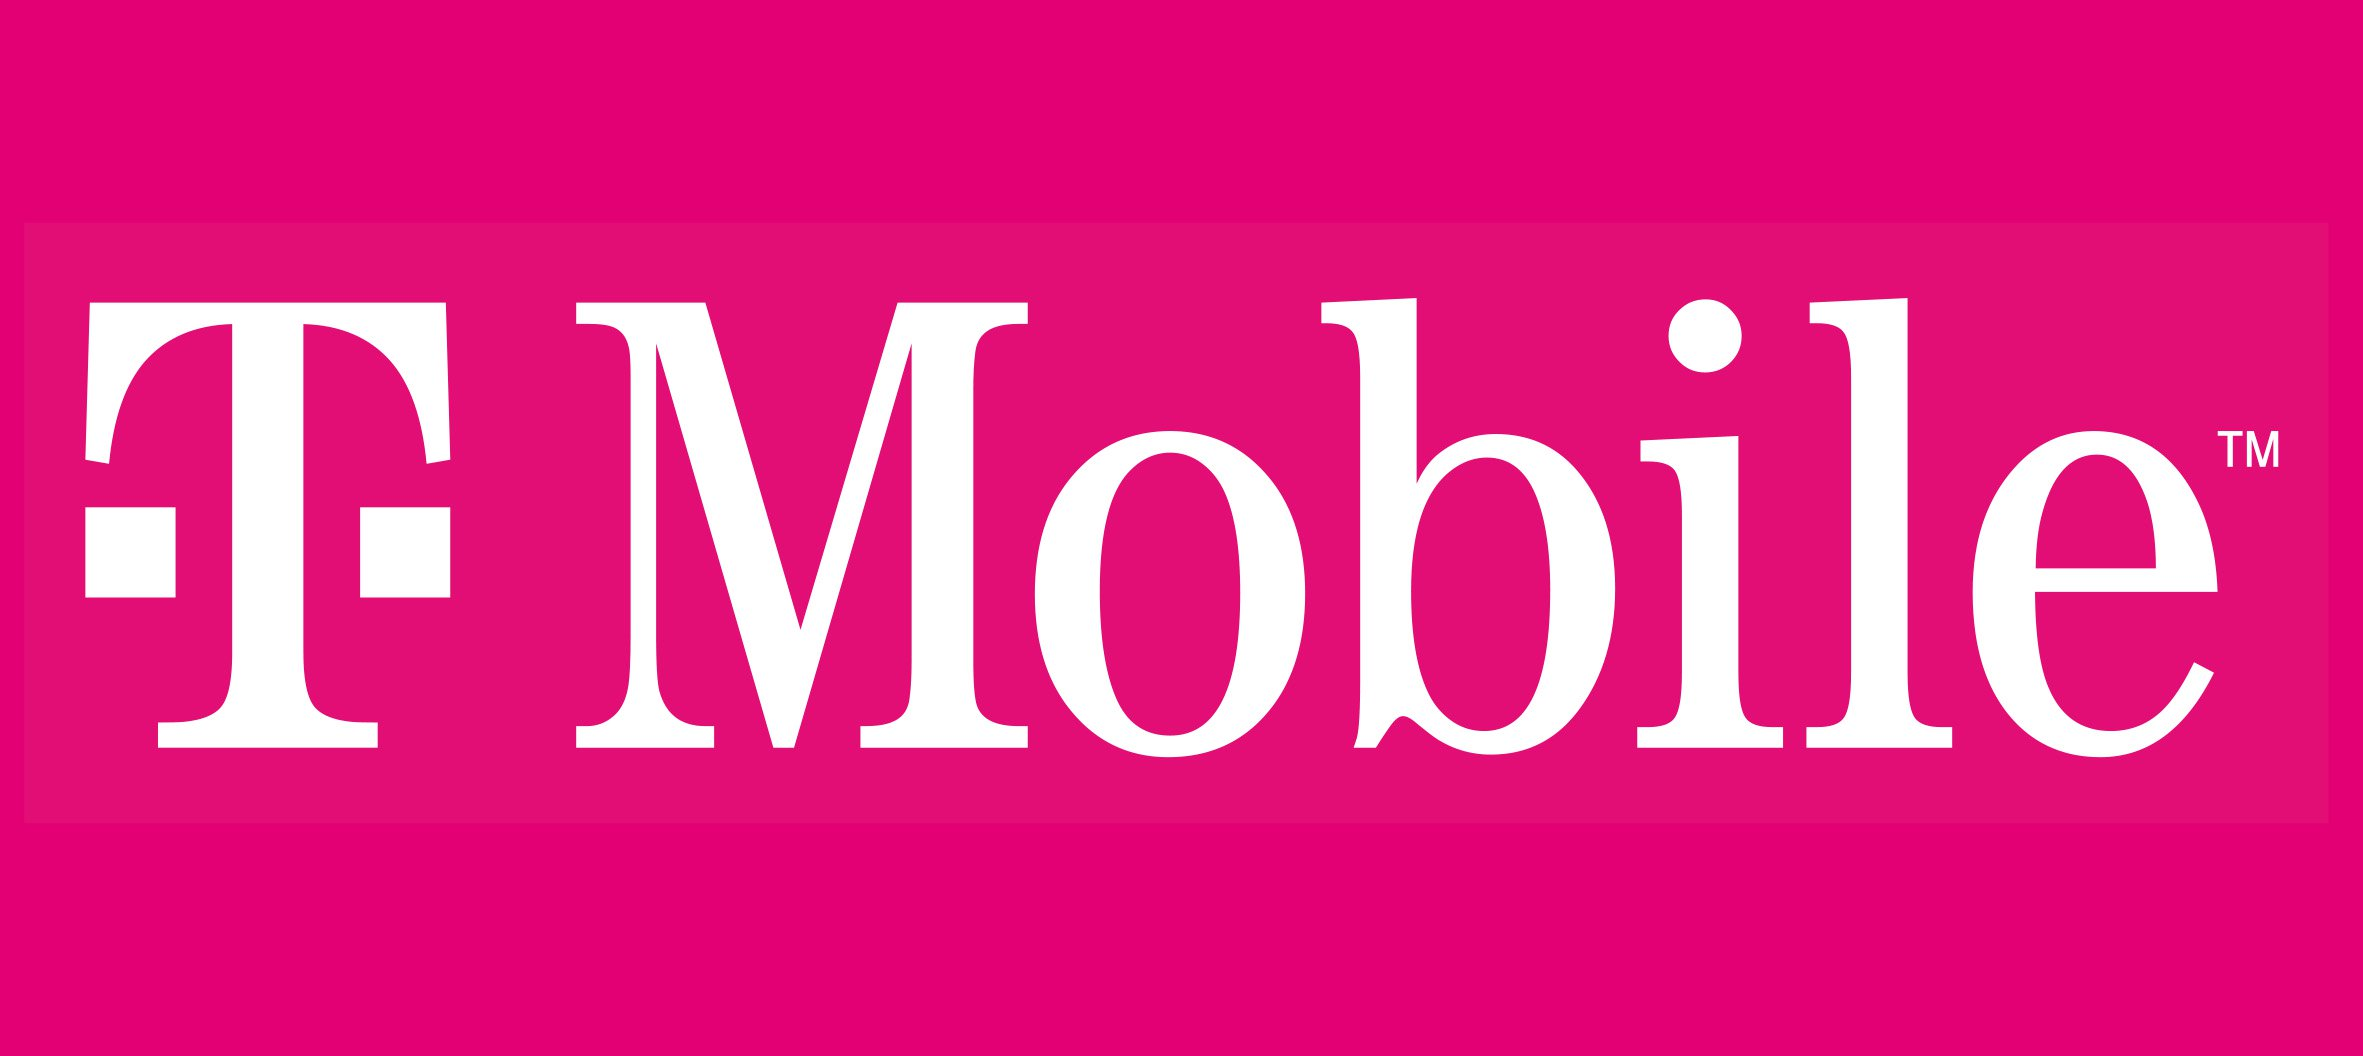 T-Mobile ends banking venture in Poland after failing to resonate with customers